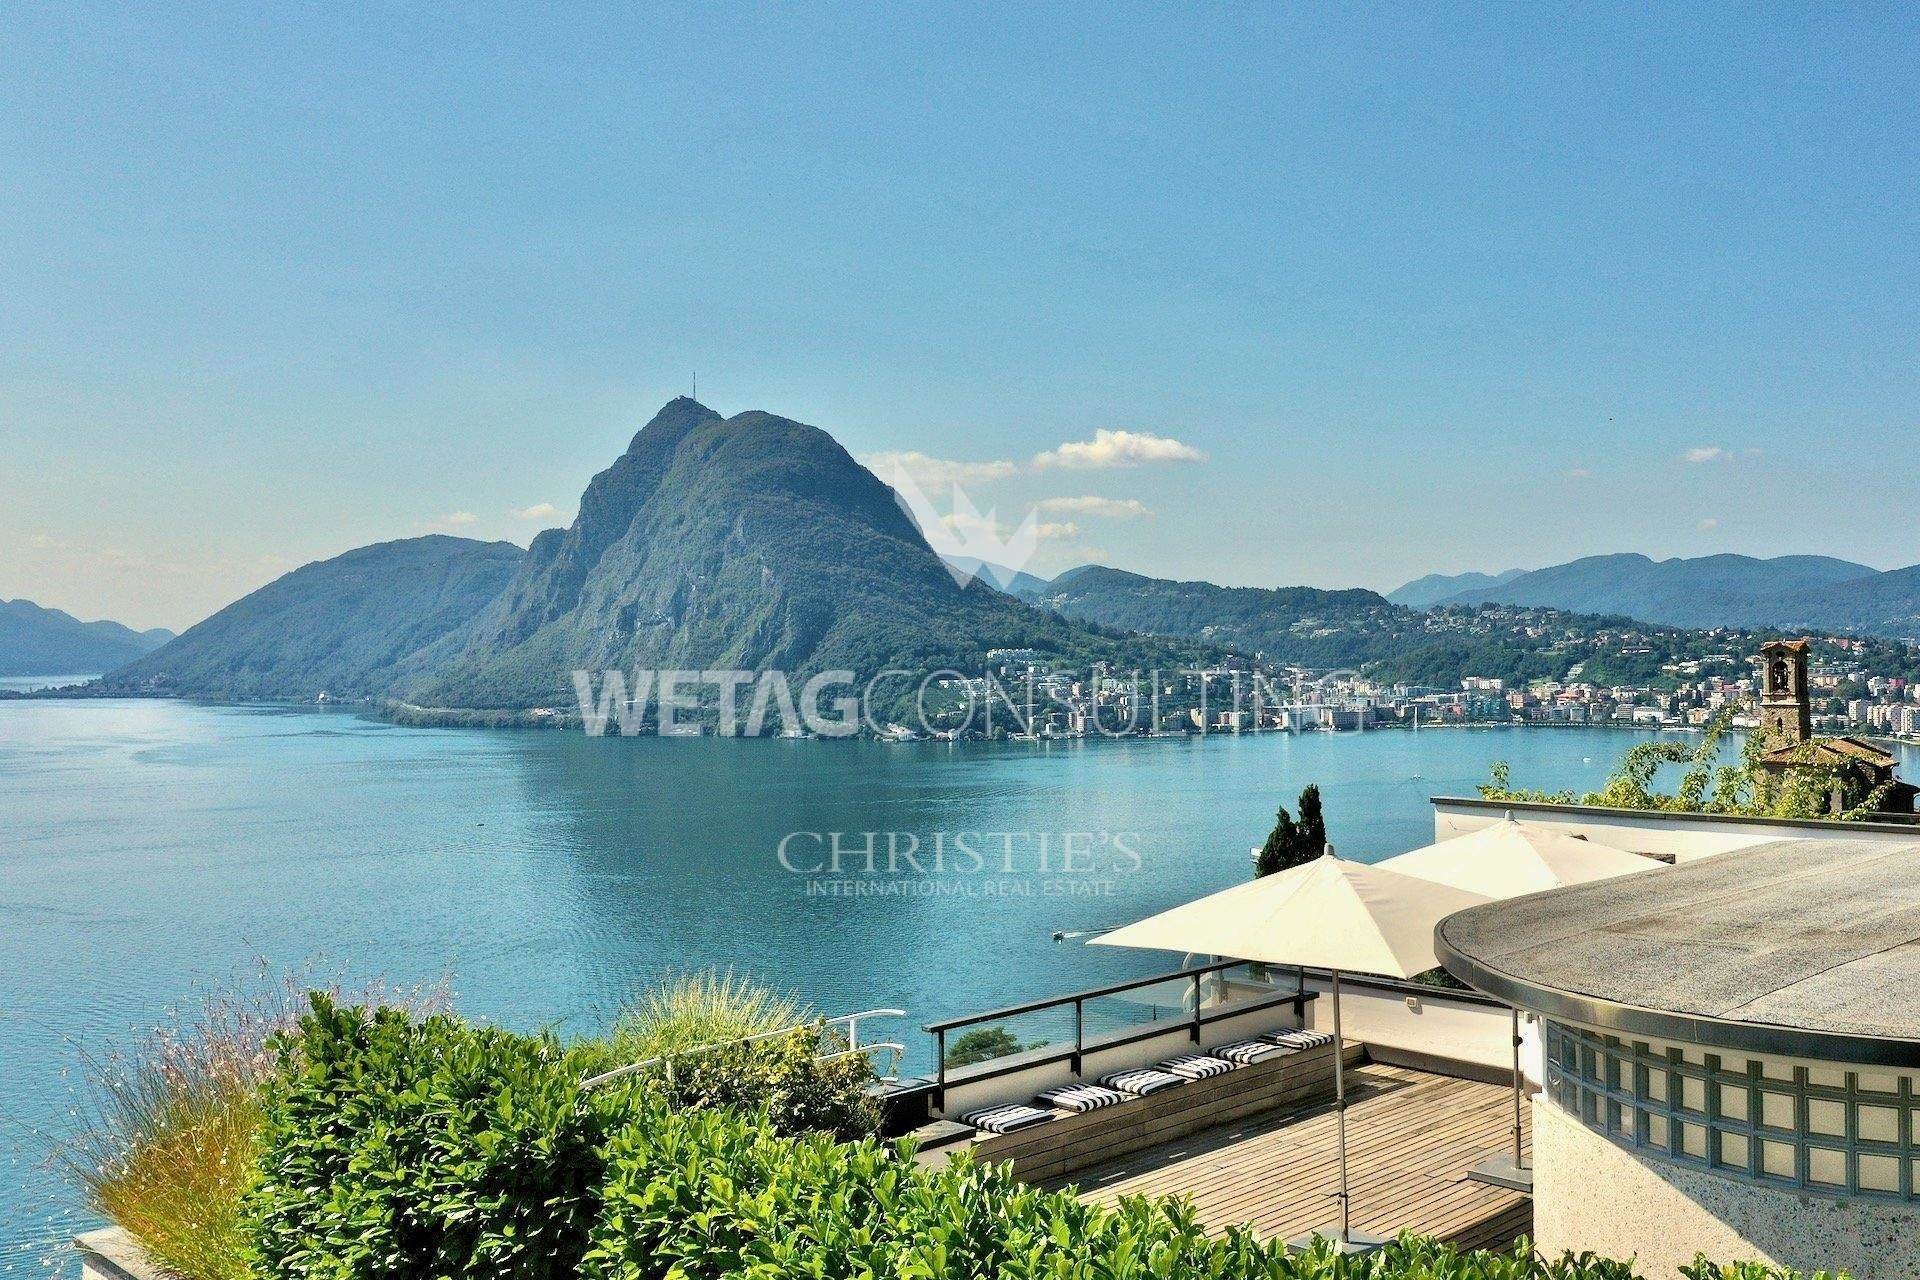 Apartamento por un Venta en Lake view & large rooftop terrace: penthouse apartment in Ruvigliana for sale Ruvigliana, Tesino,6977 Suiza